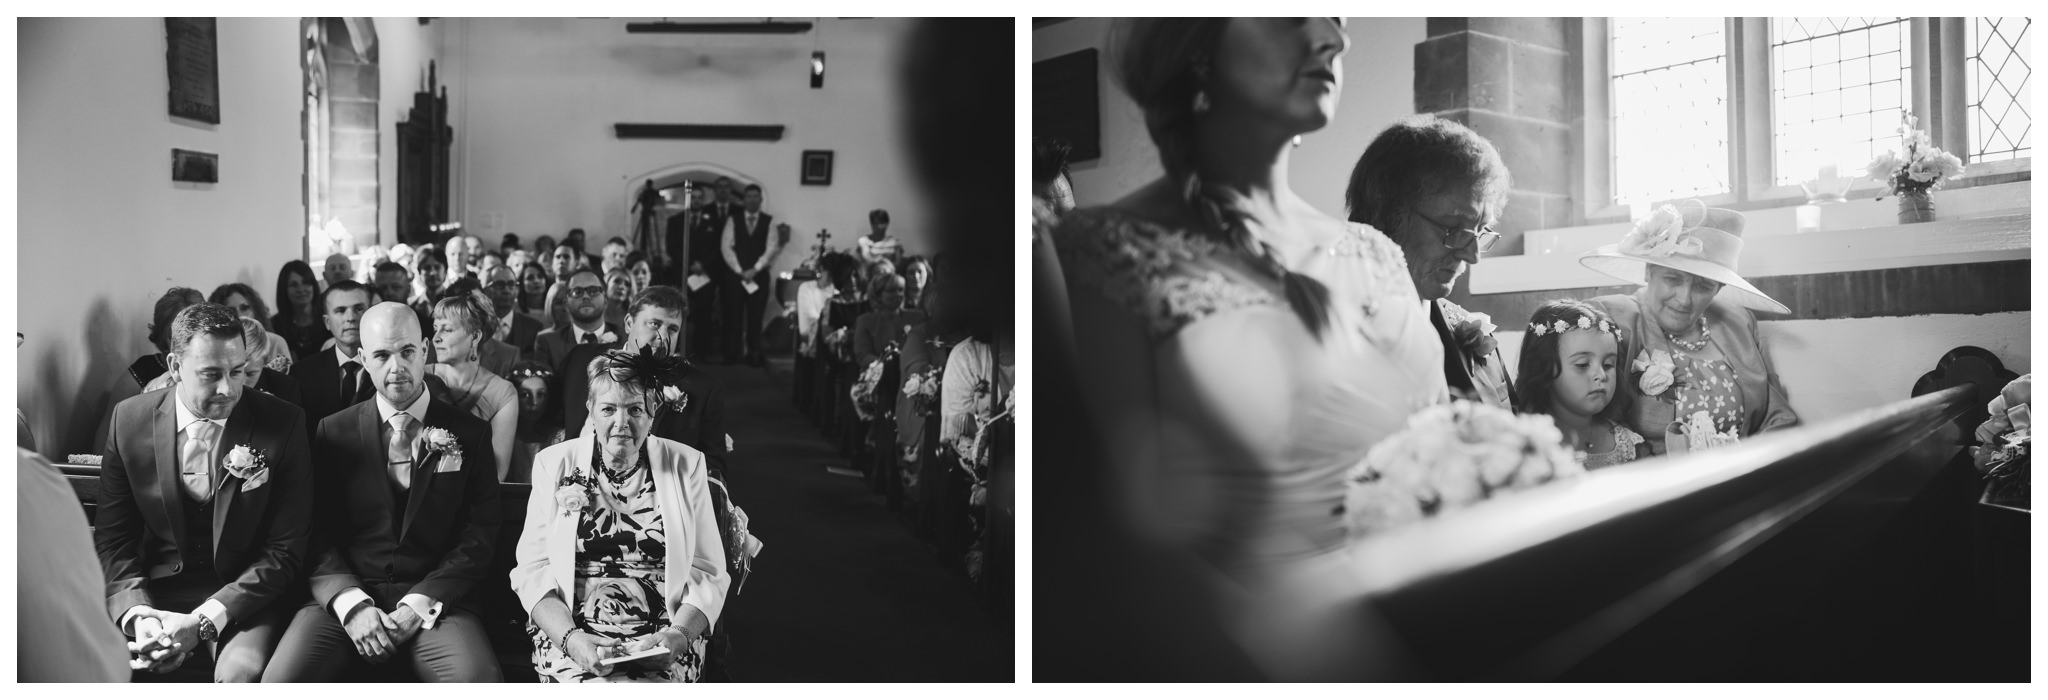 Richard Savage Photography - Wedding - Peterstone Court Brecon - 2016-05-11_0027